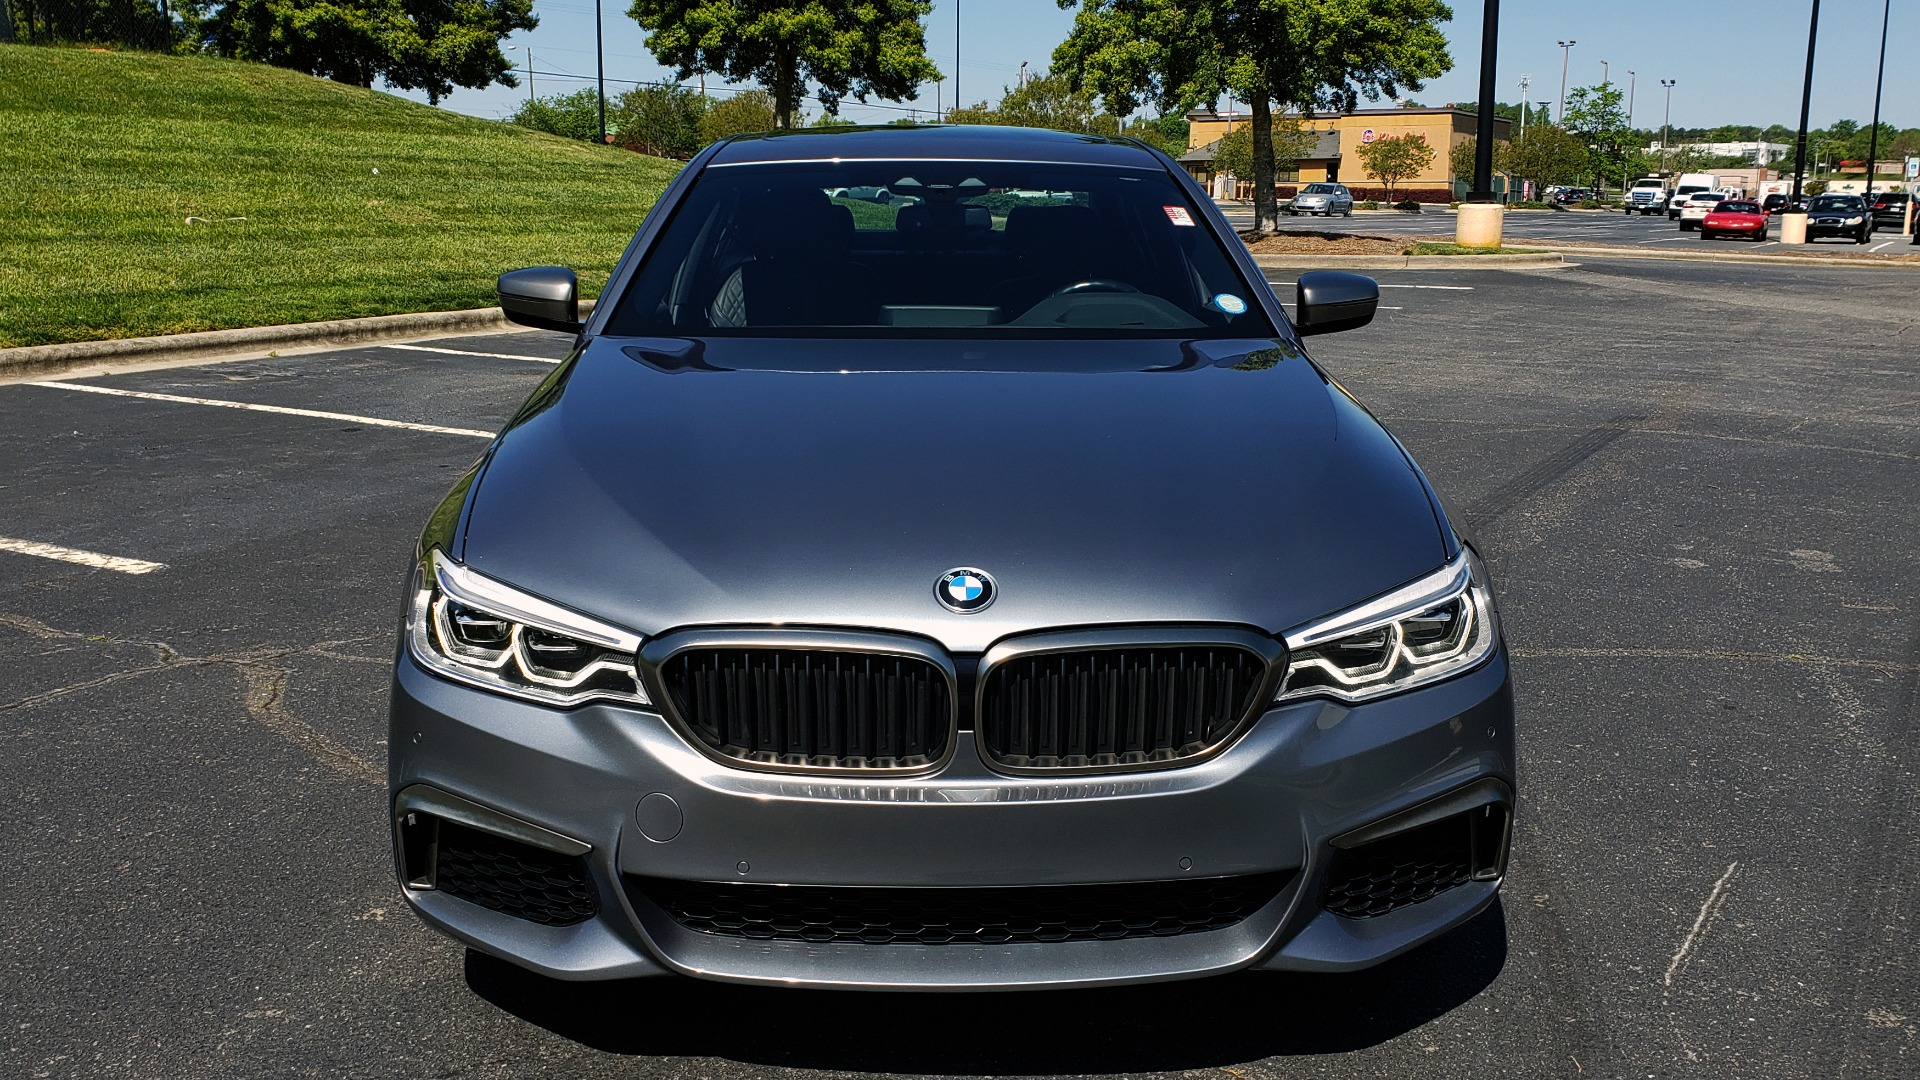 Used 2018 BMW 5 SERIES M550I XDRIVE / EXEC PKG / LUX / DRVR ASST / CLD WTHR / ACTIVE DR for sale Sold at Formula Imports in Charlotte NC 28227 23